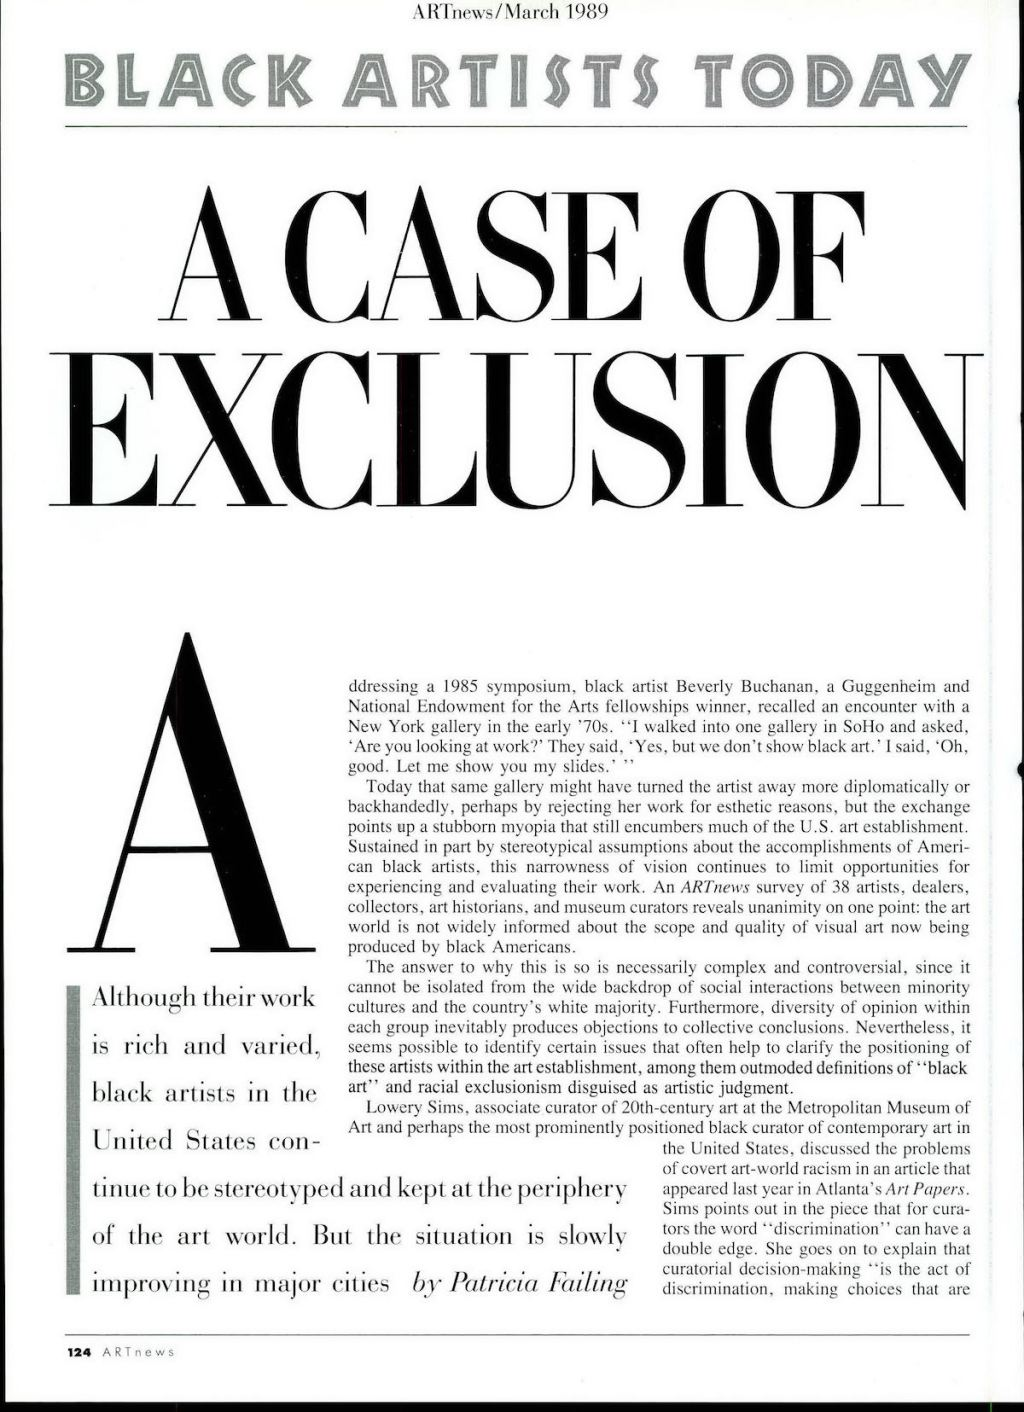 www.artnews.com: How Top U.S. Art Museums Excluded Black Artists During the 1980s: From the Archives